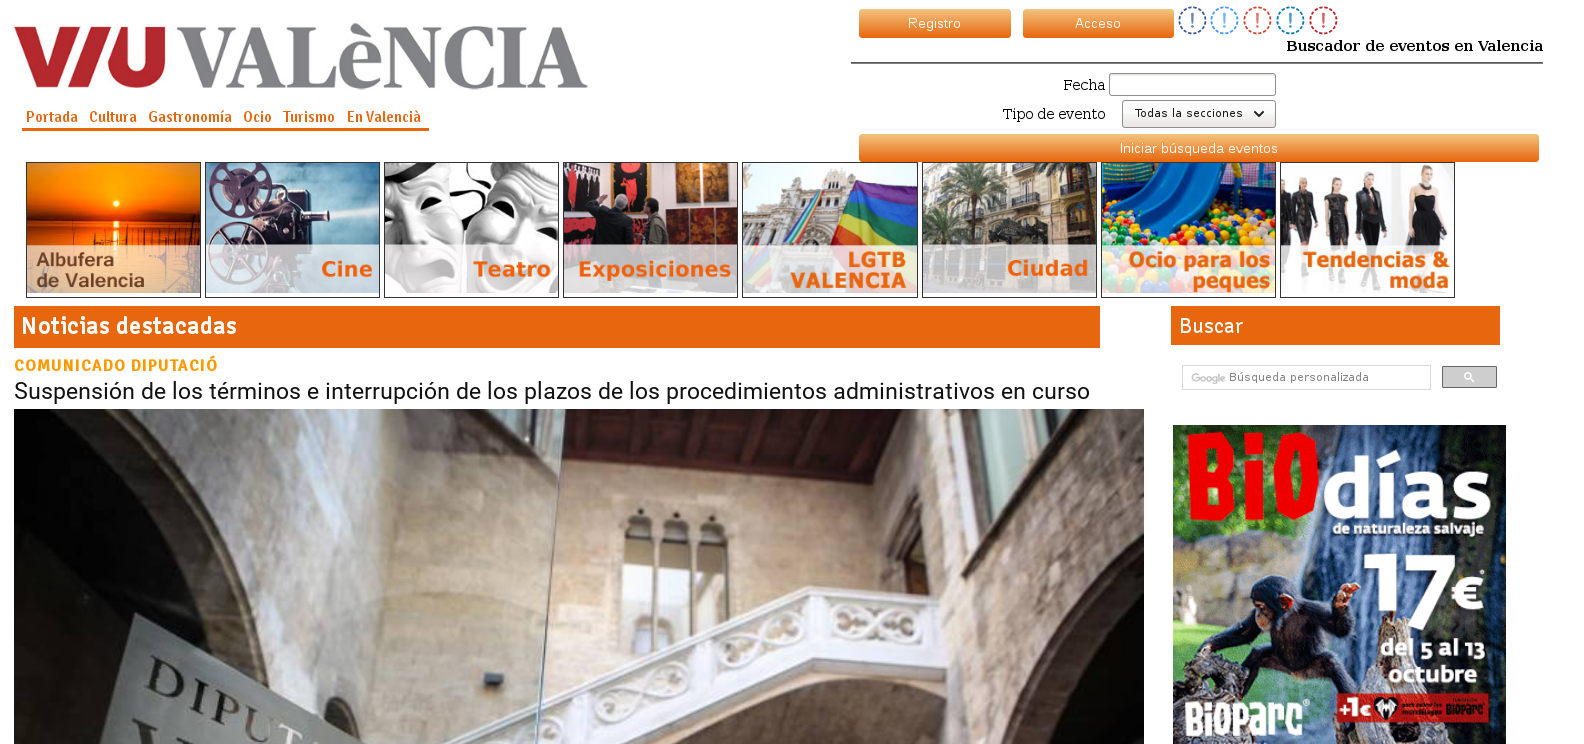 Spanish Guest Post on Viu Valencia - Culutre Tourism Art newspaper